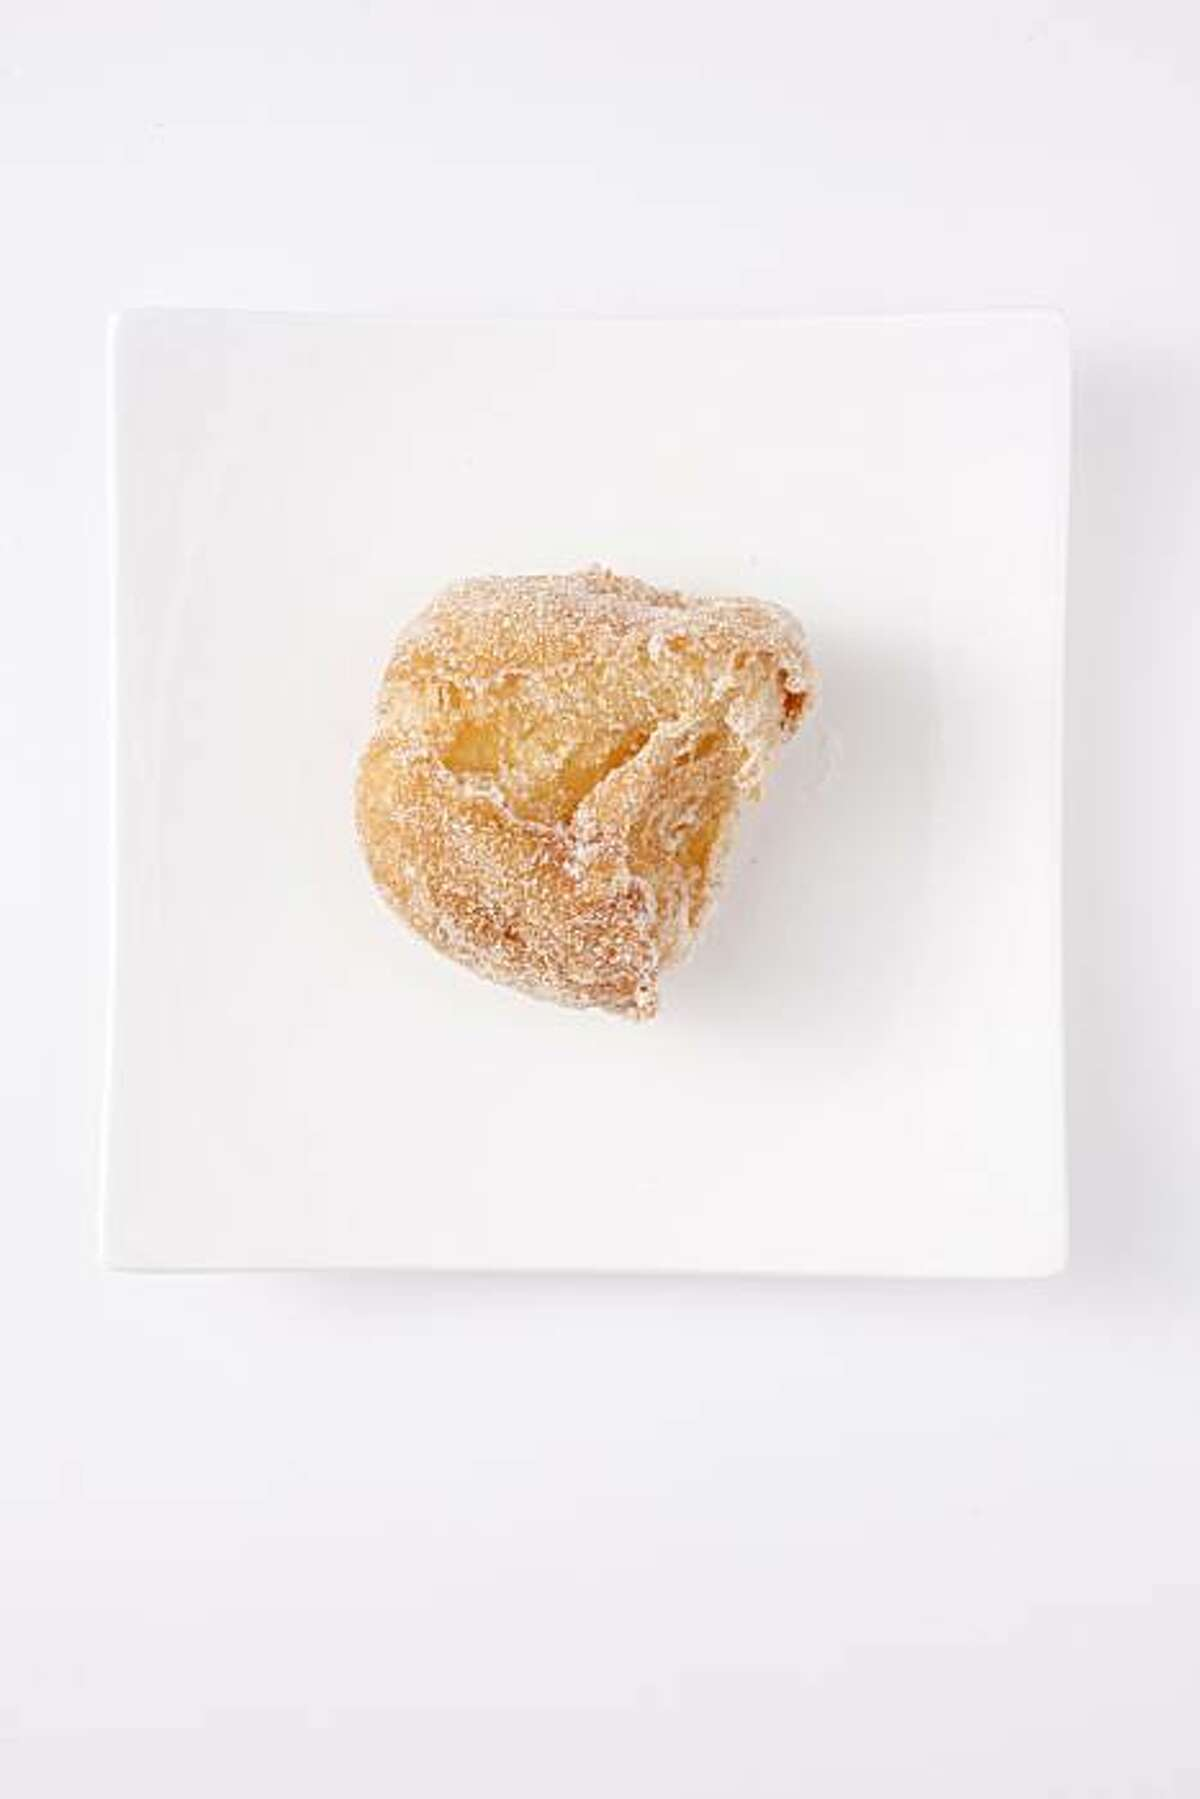 Orange Blossom Beignets in San Francisco, Calif., on March 17, 2010. Food styled by Pailin Chongchitnant.